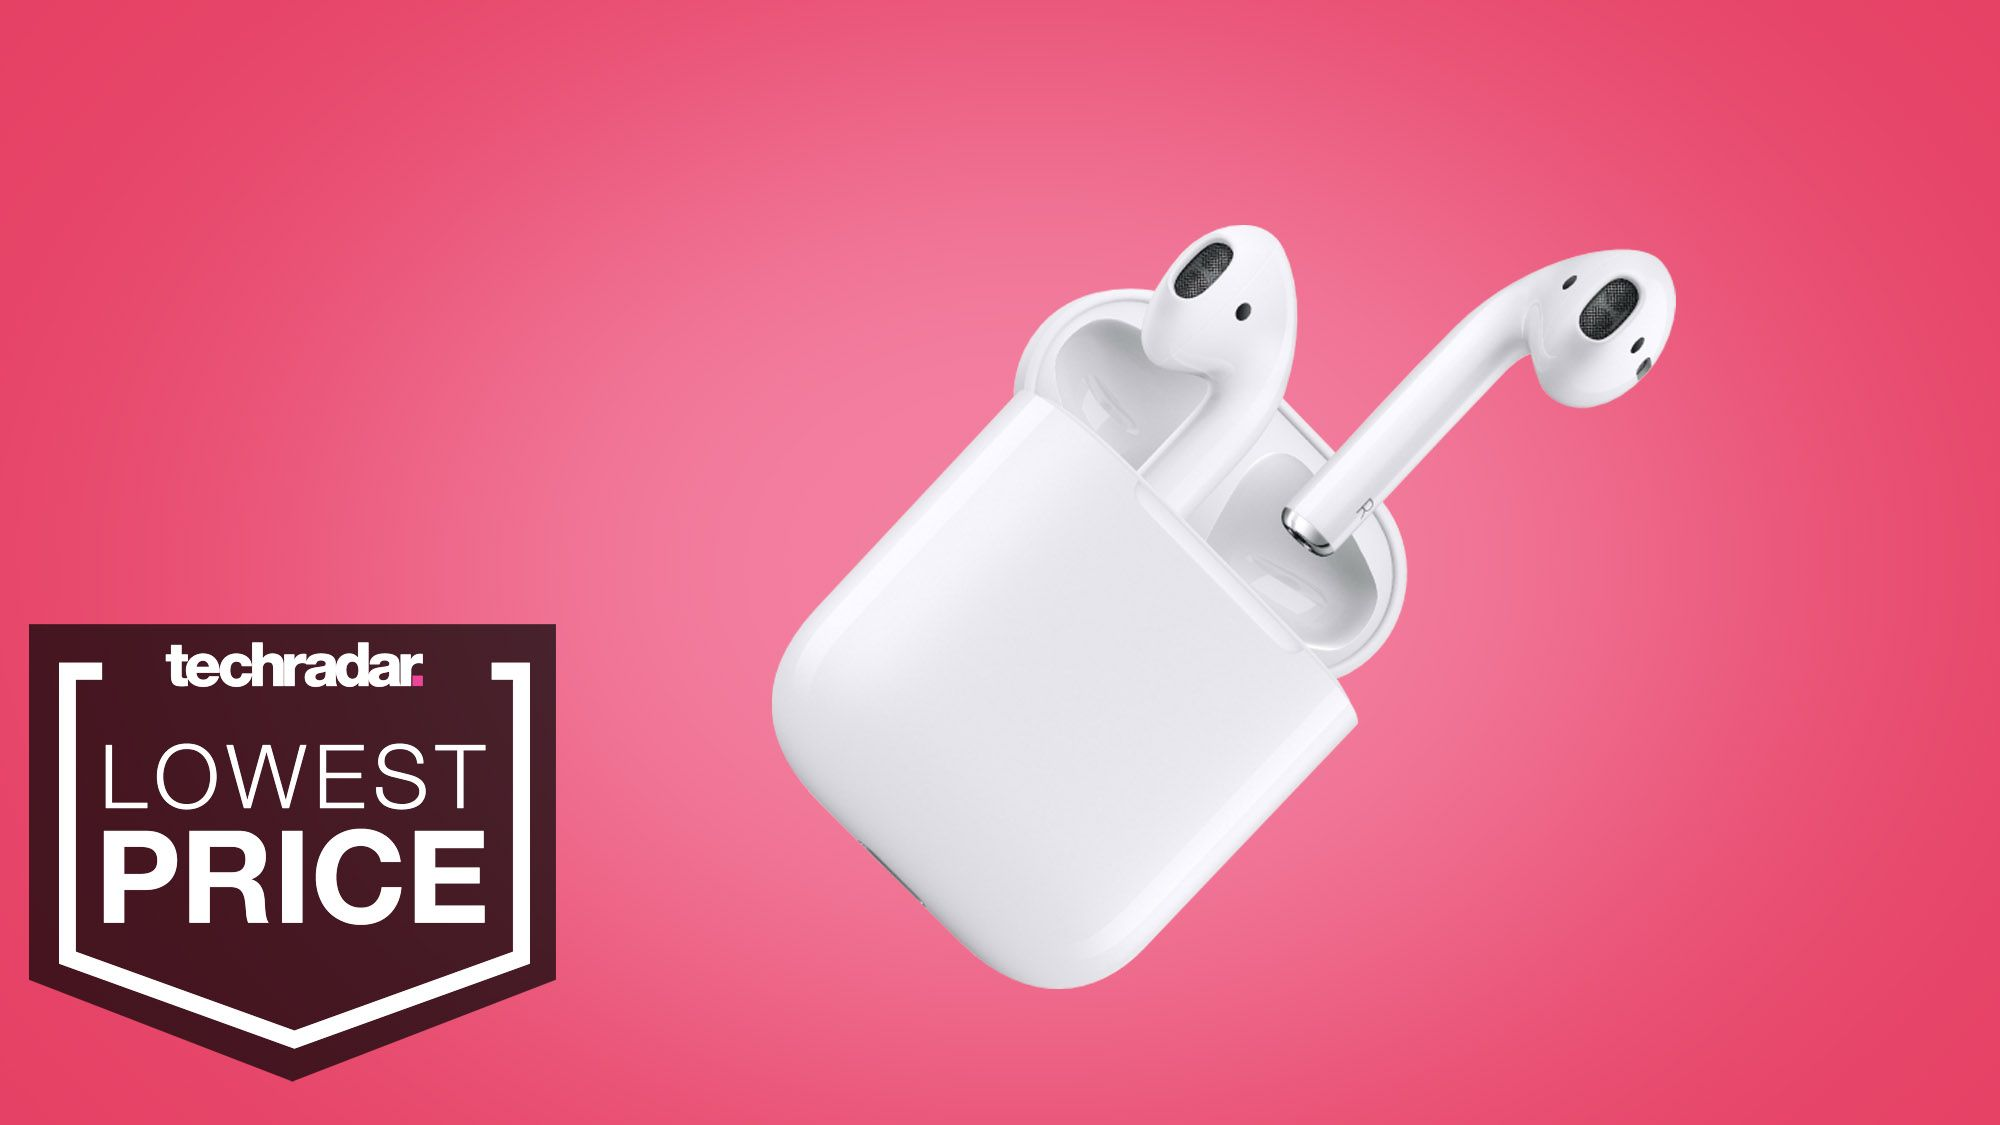 Apple Airpods Cyber Monday Deals 2019 Time S Almost Up On These Offers Apple Black Friday Prices Best Black Friday